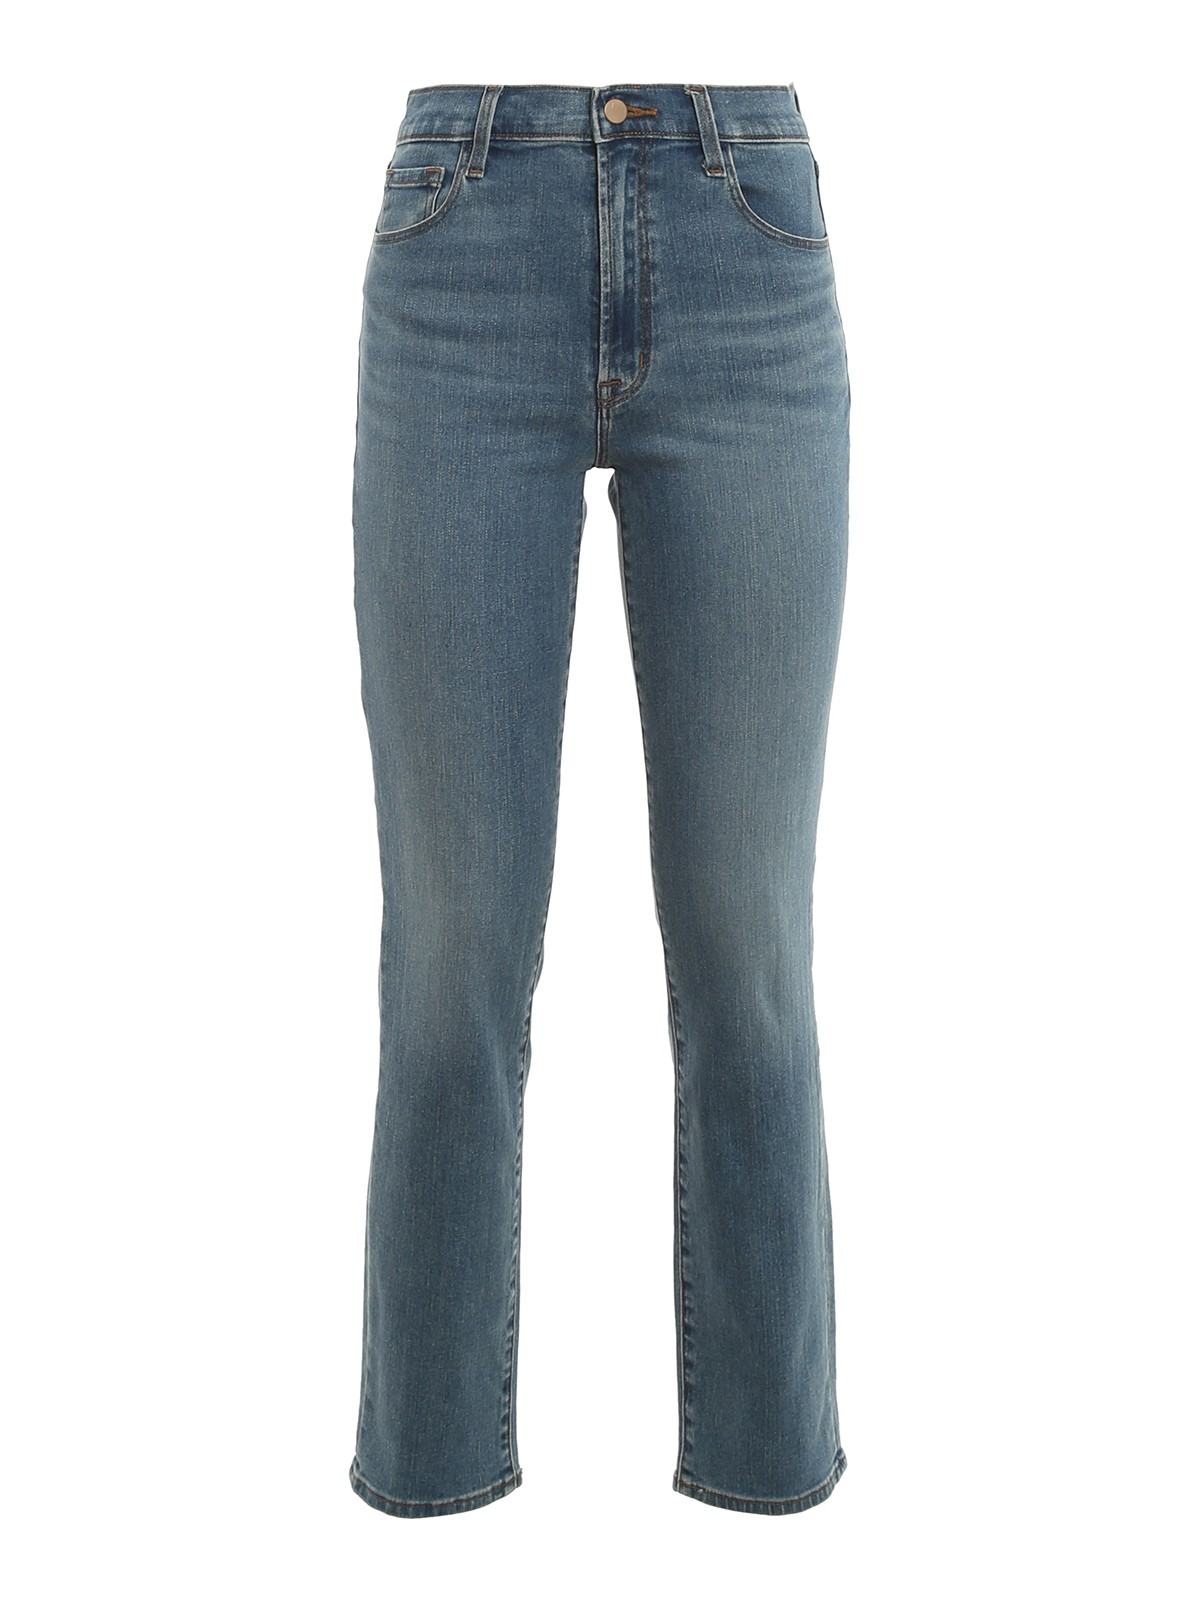 J Brand High Waisted Straight Fit Jeans In Medium Wash